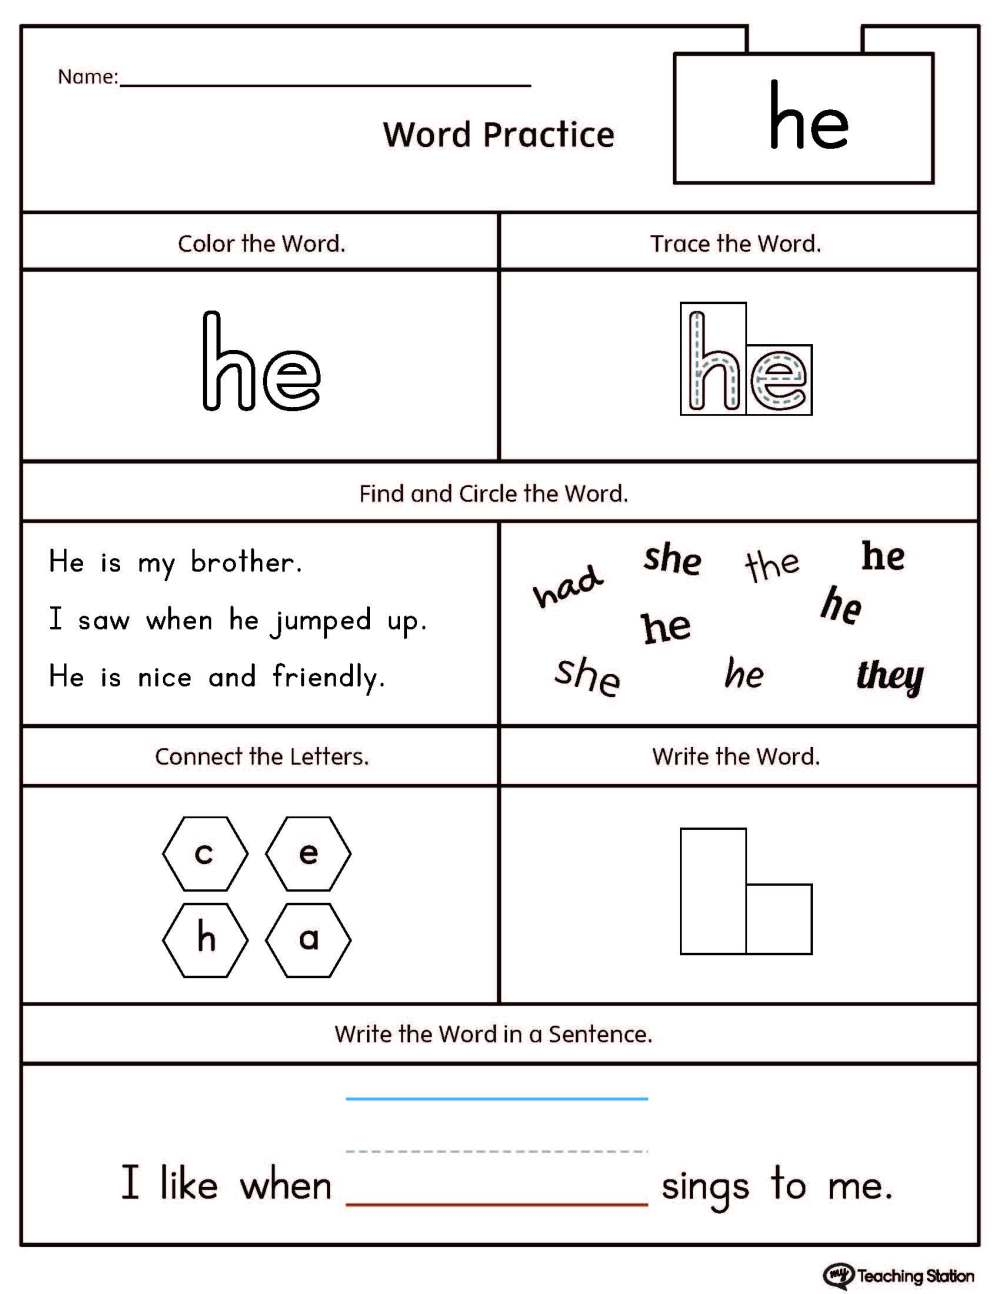 medium resolution of High-Frequency Word HE Printable Worksheet   MyTeachingStation.com